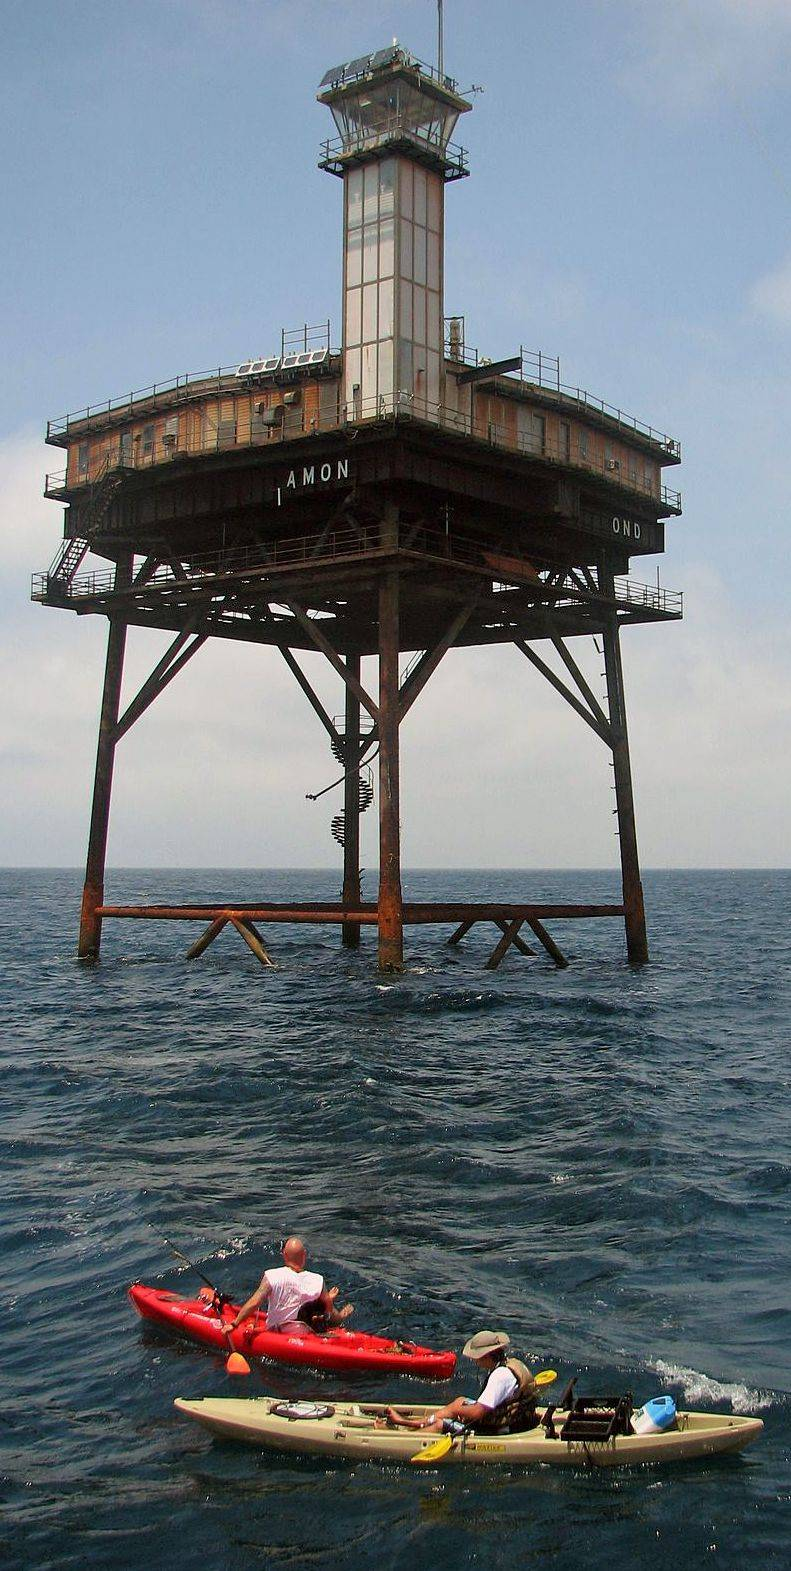 The Diamond Shoals Light Tower, located 13 miles off Cape Hatteras, N.C., was purchased from the federal government for $20,000.